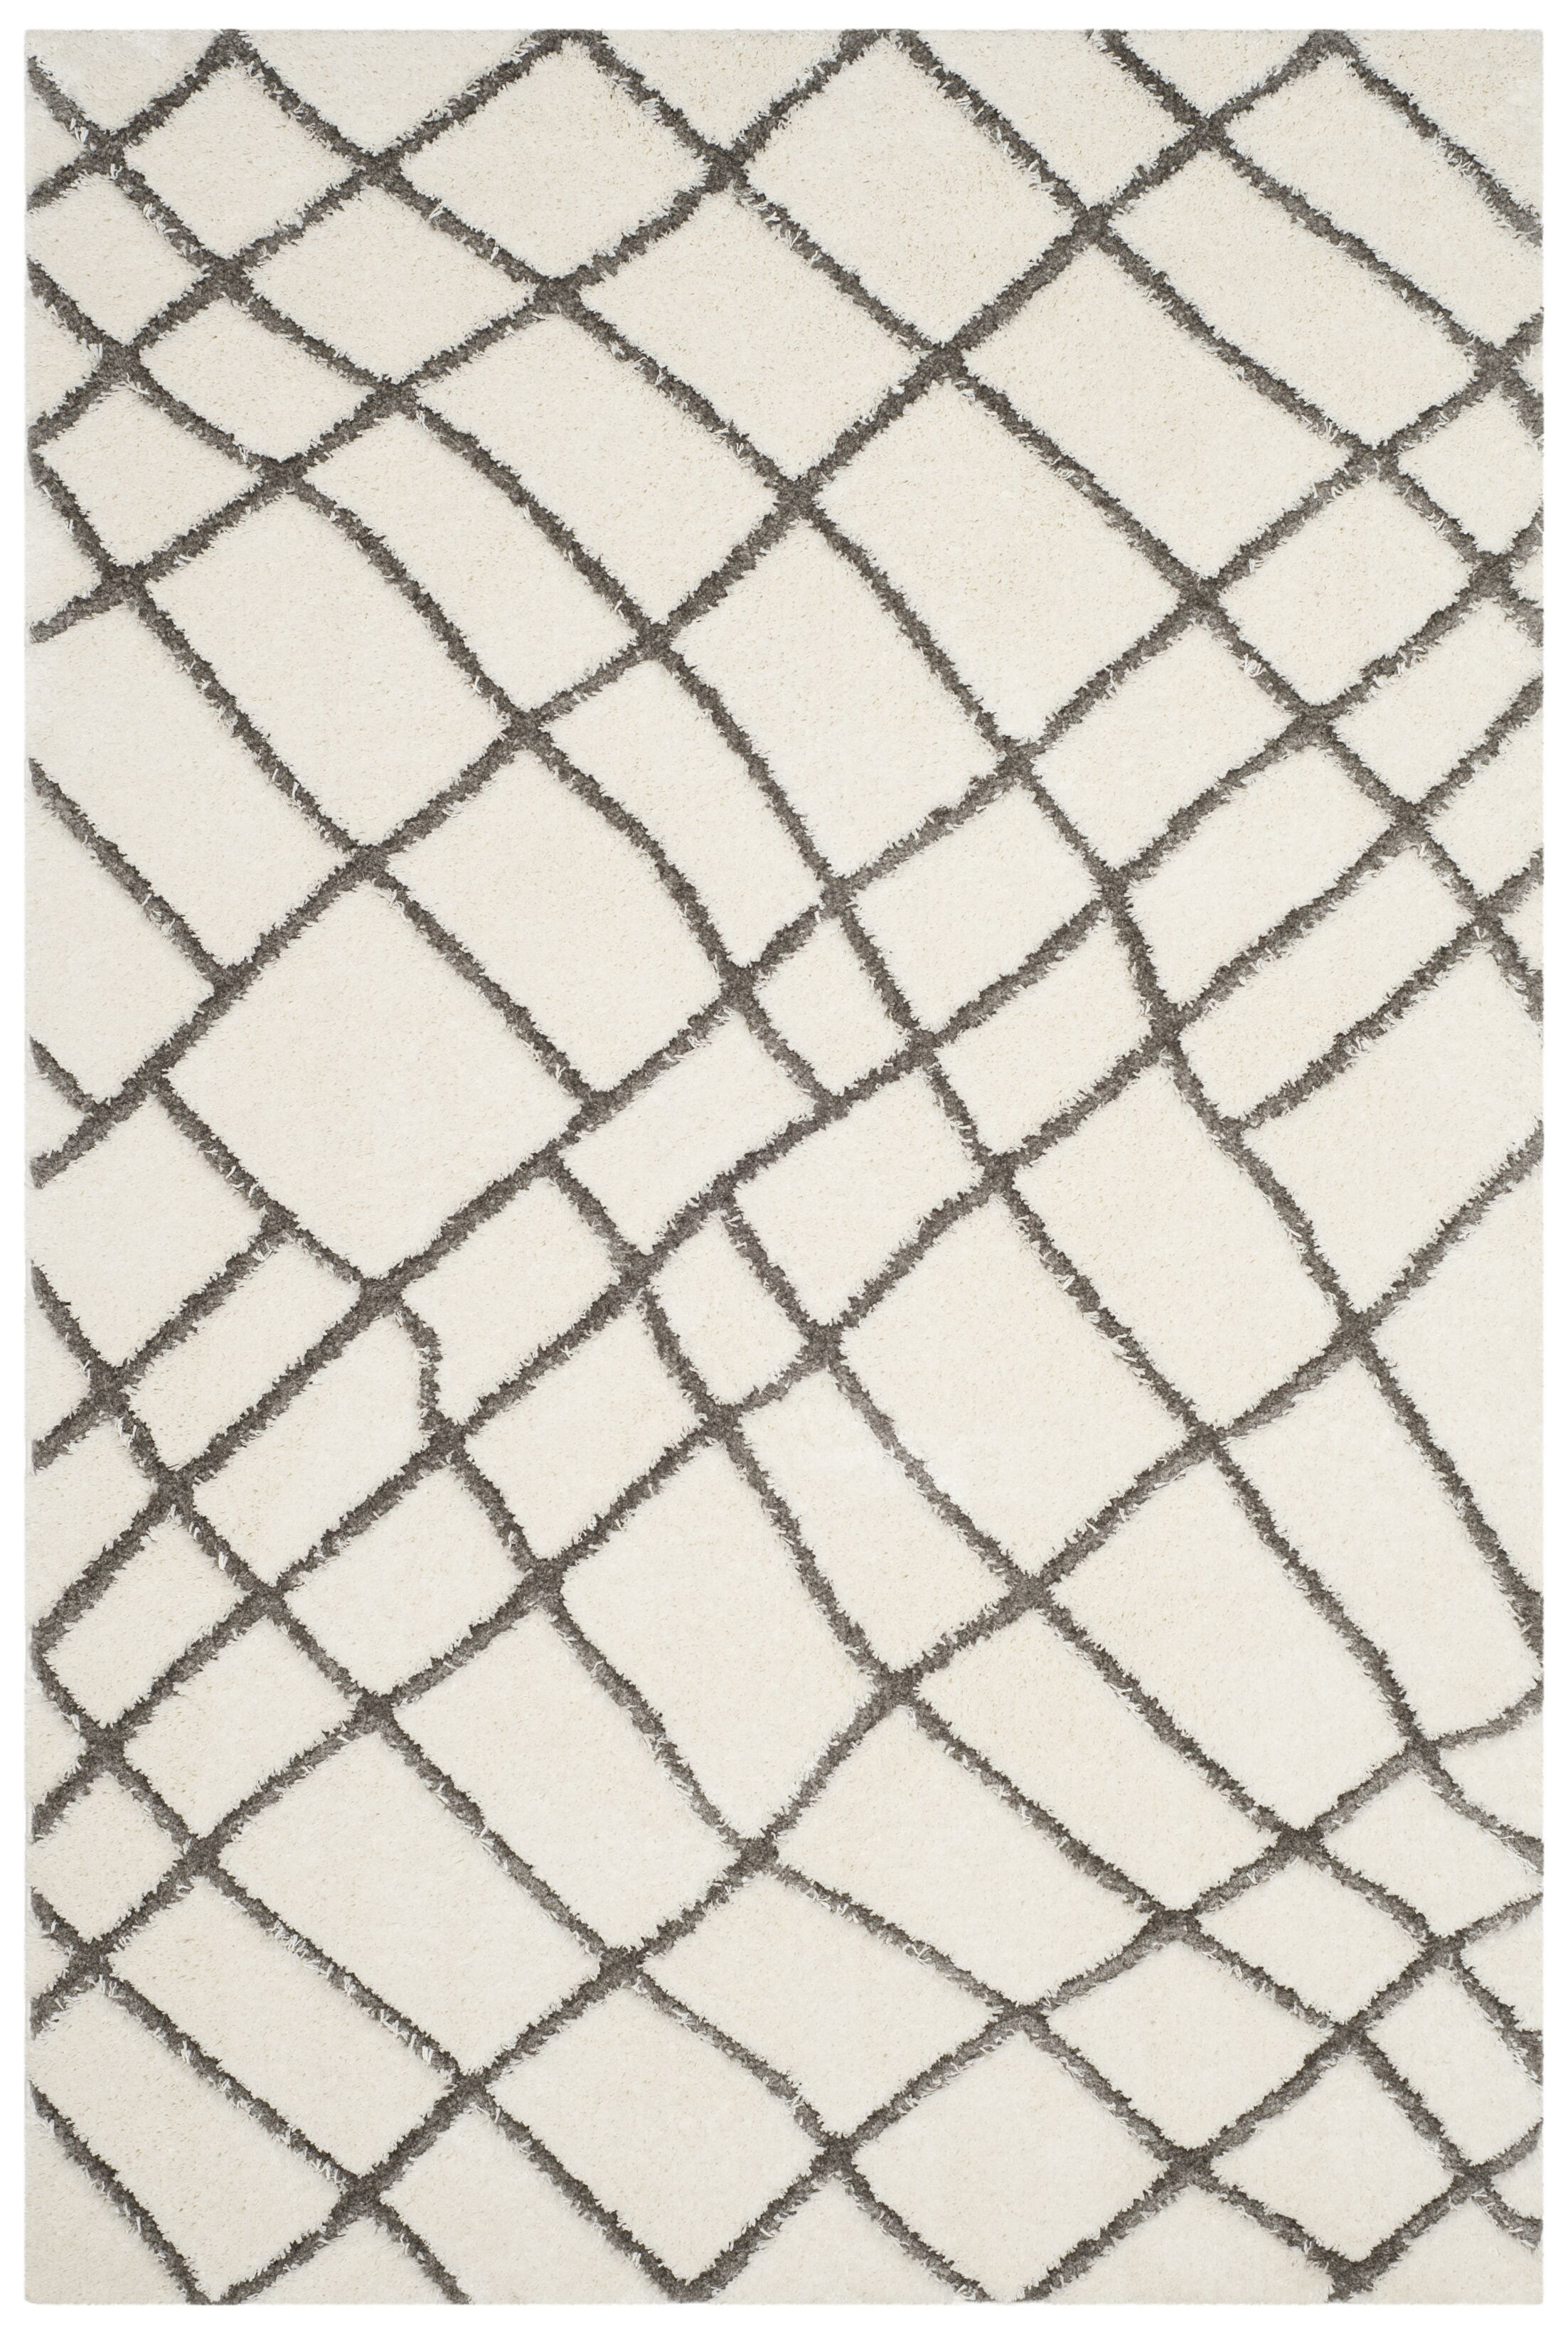 Isair Ivory Area Rug Rug Size: Square 6'7